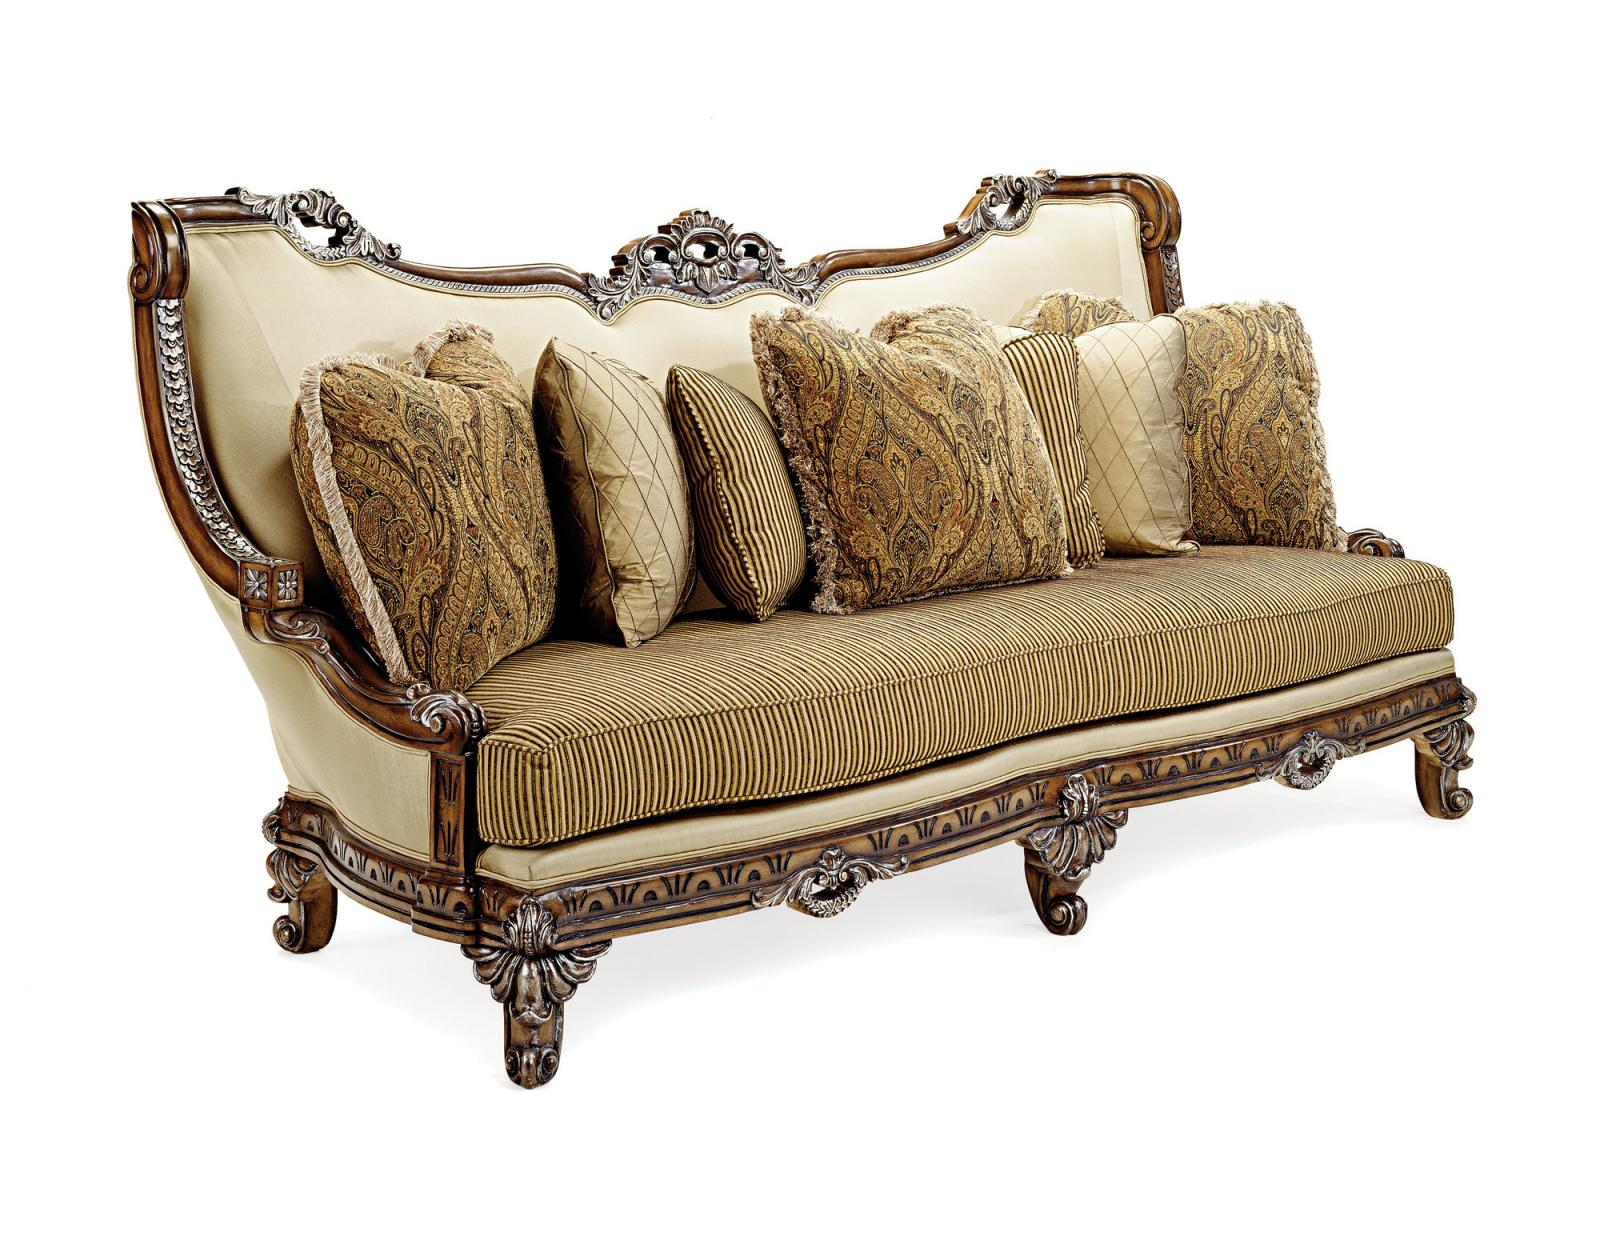 Bennetti Antique Brown Wood w/Golden Tips Luxury Sofa Firenza BR Sofa Classic Traditional